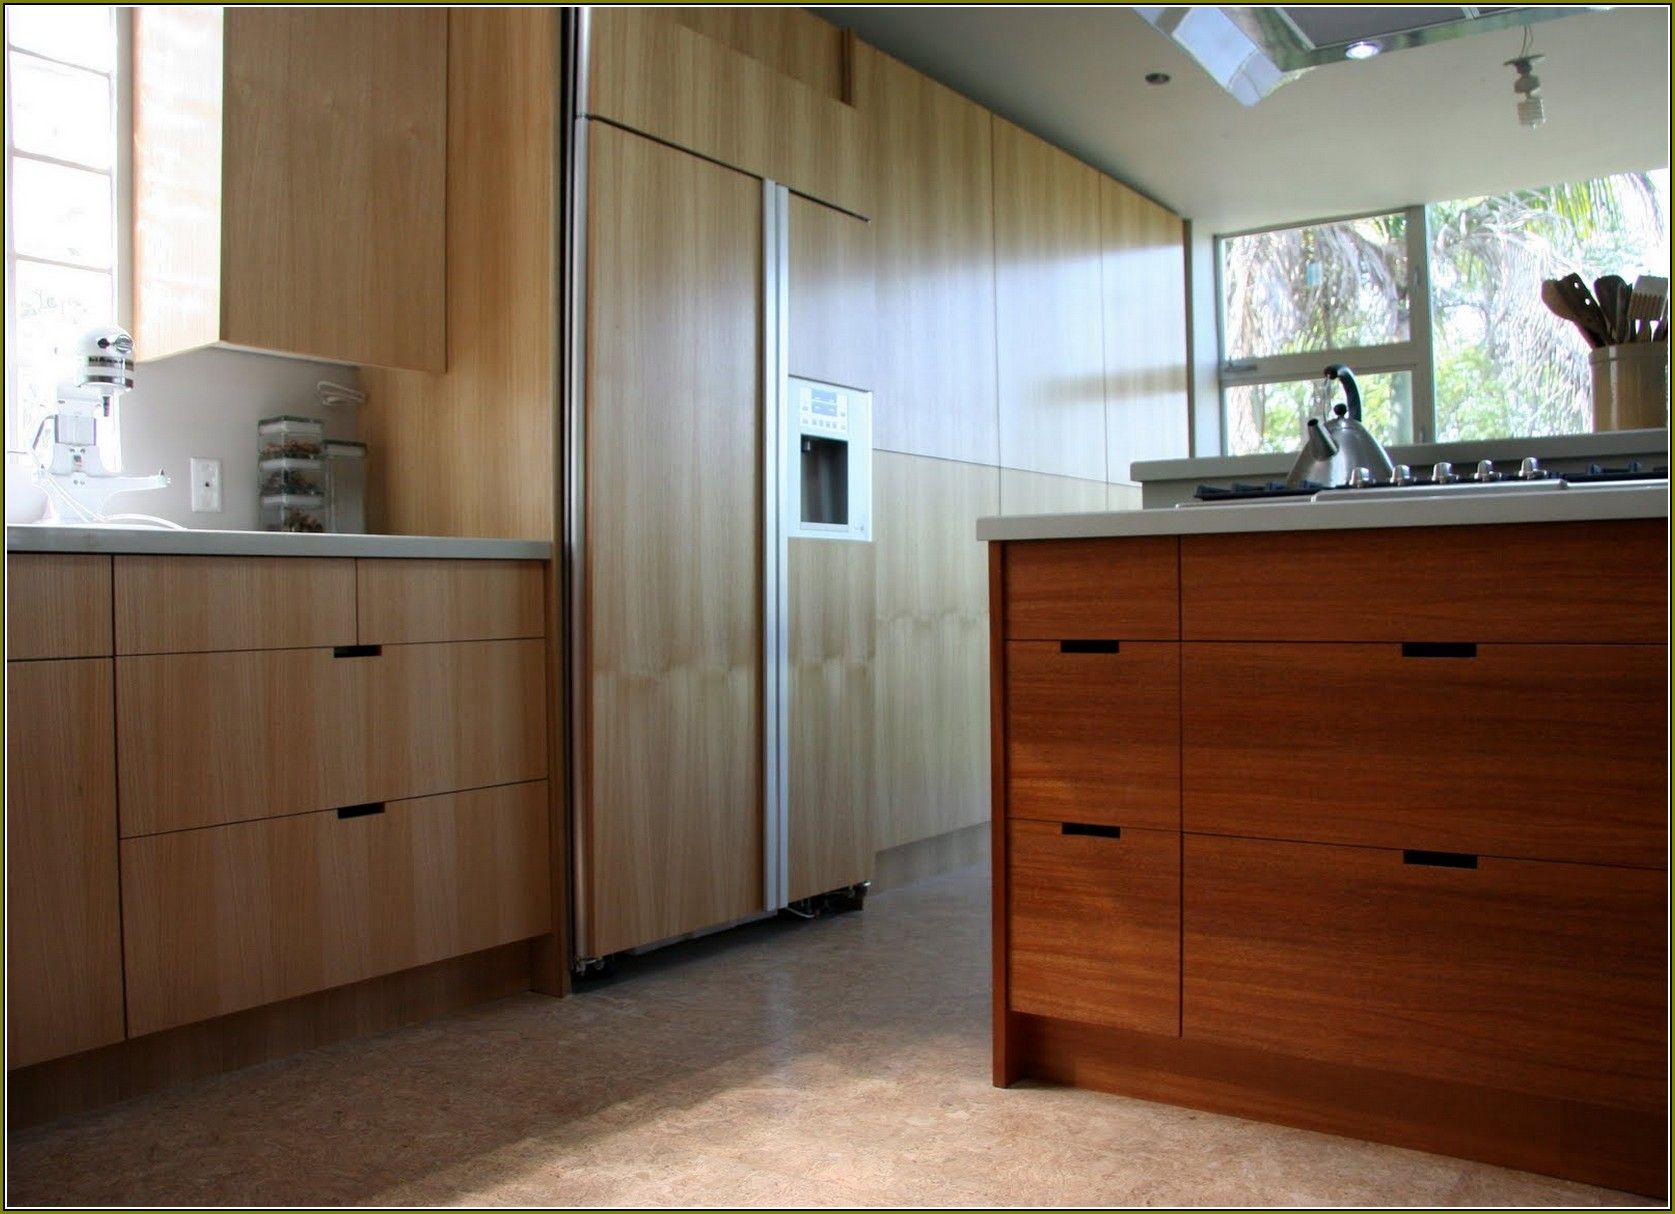 Best Kitchen Gallery Your Home Improvements Refference Ikea Kitchen Cabi